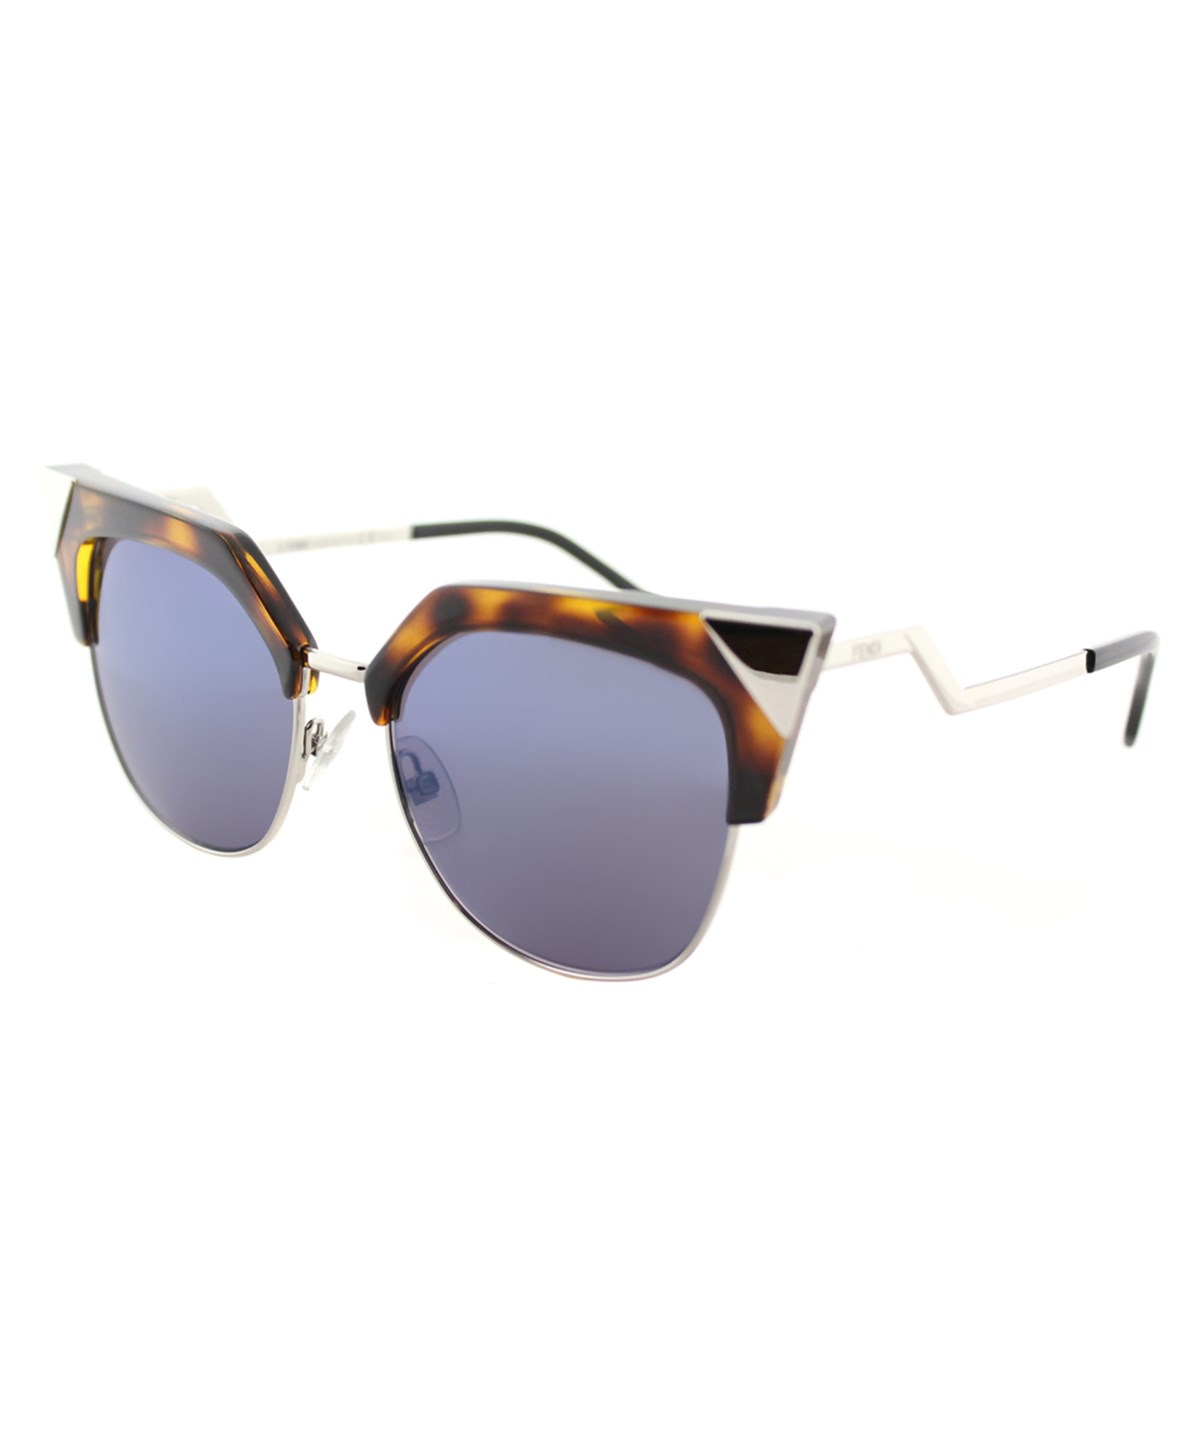 Fendi Women Cat-Eye Metal Sunglasses In Havana Palladium